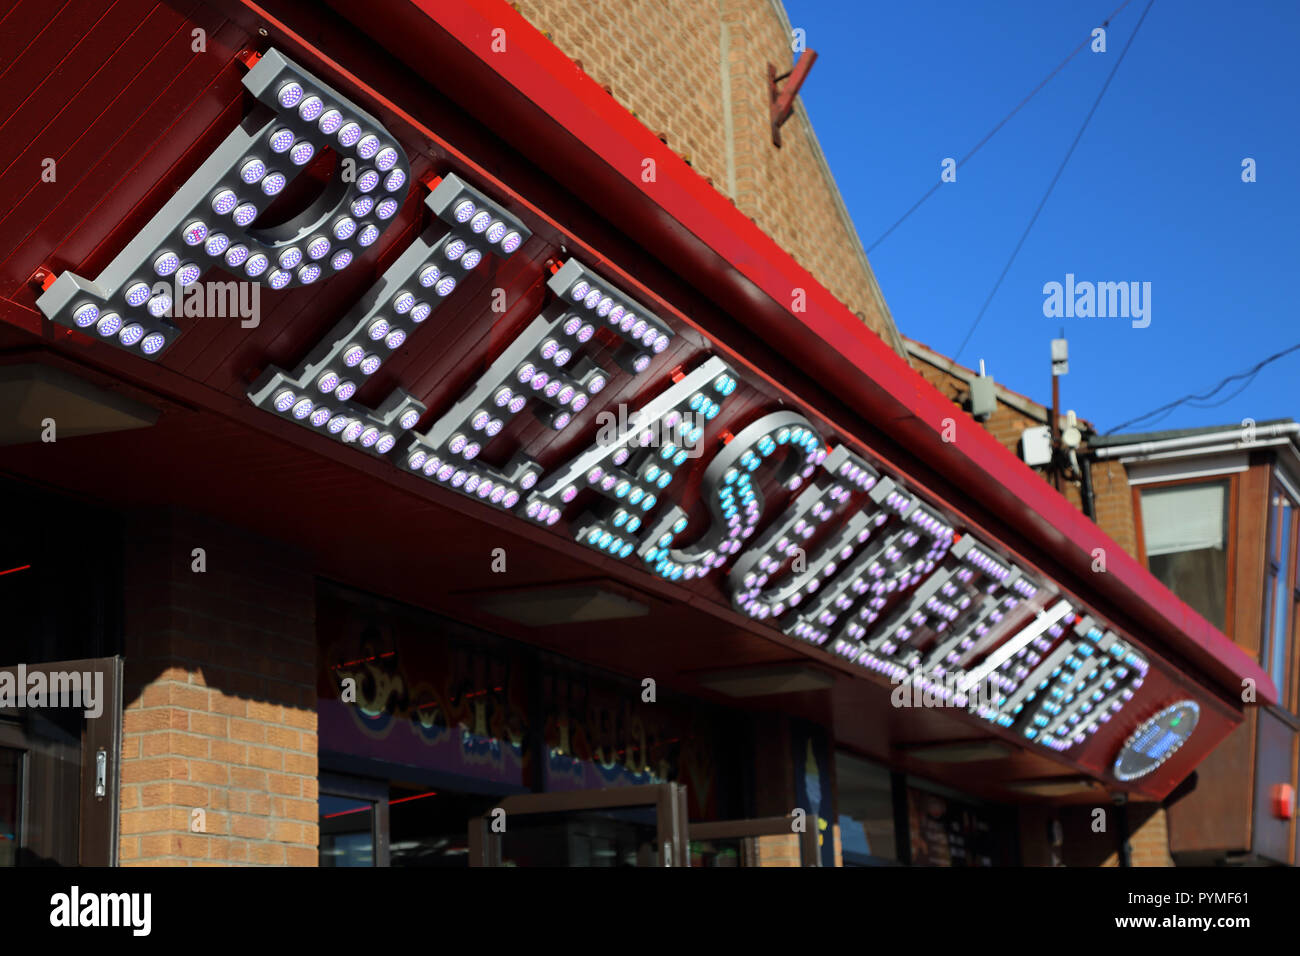 A view of Pleasureland, an amusement arcade in Whitby, North Yorkshire, England, UK. - Stock Image